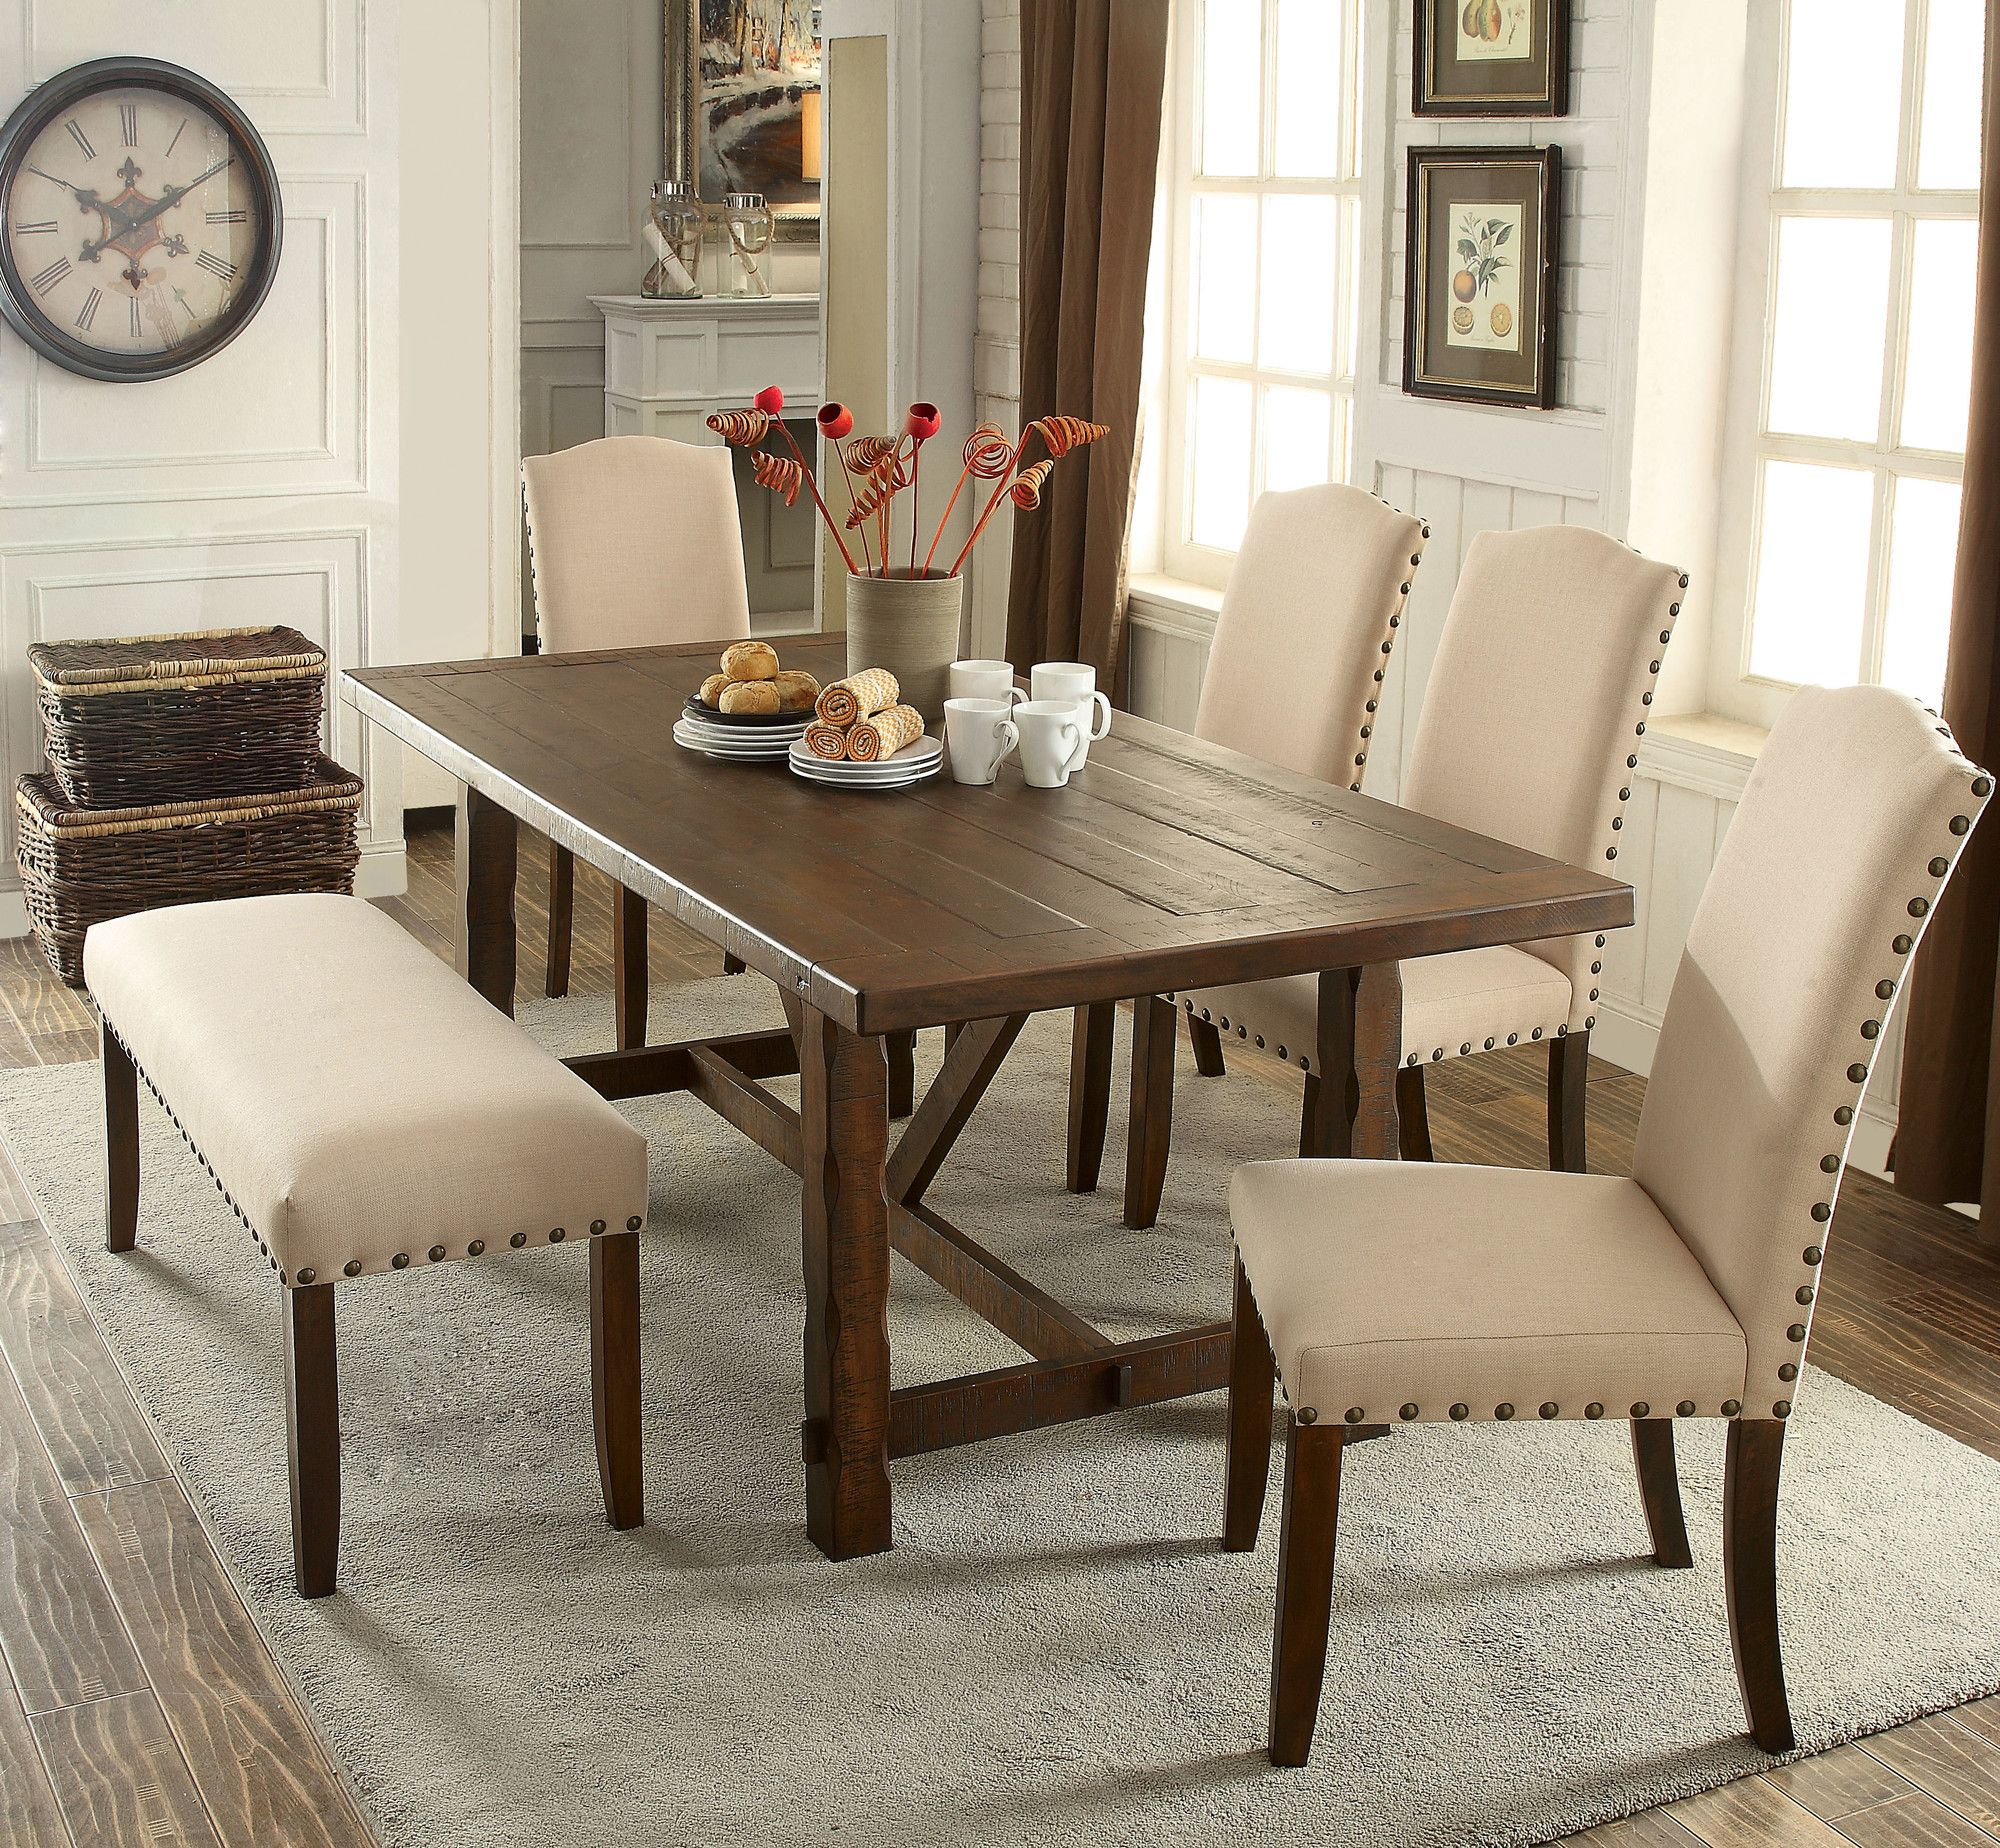 Dining room table with upholstered bench  Holly Hills  Piece Dining Set  furniture  Pinterest  Dining